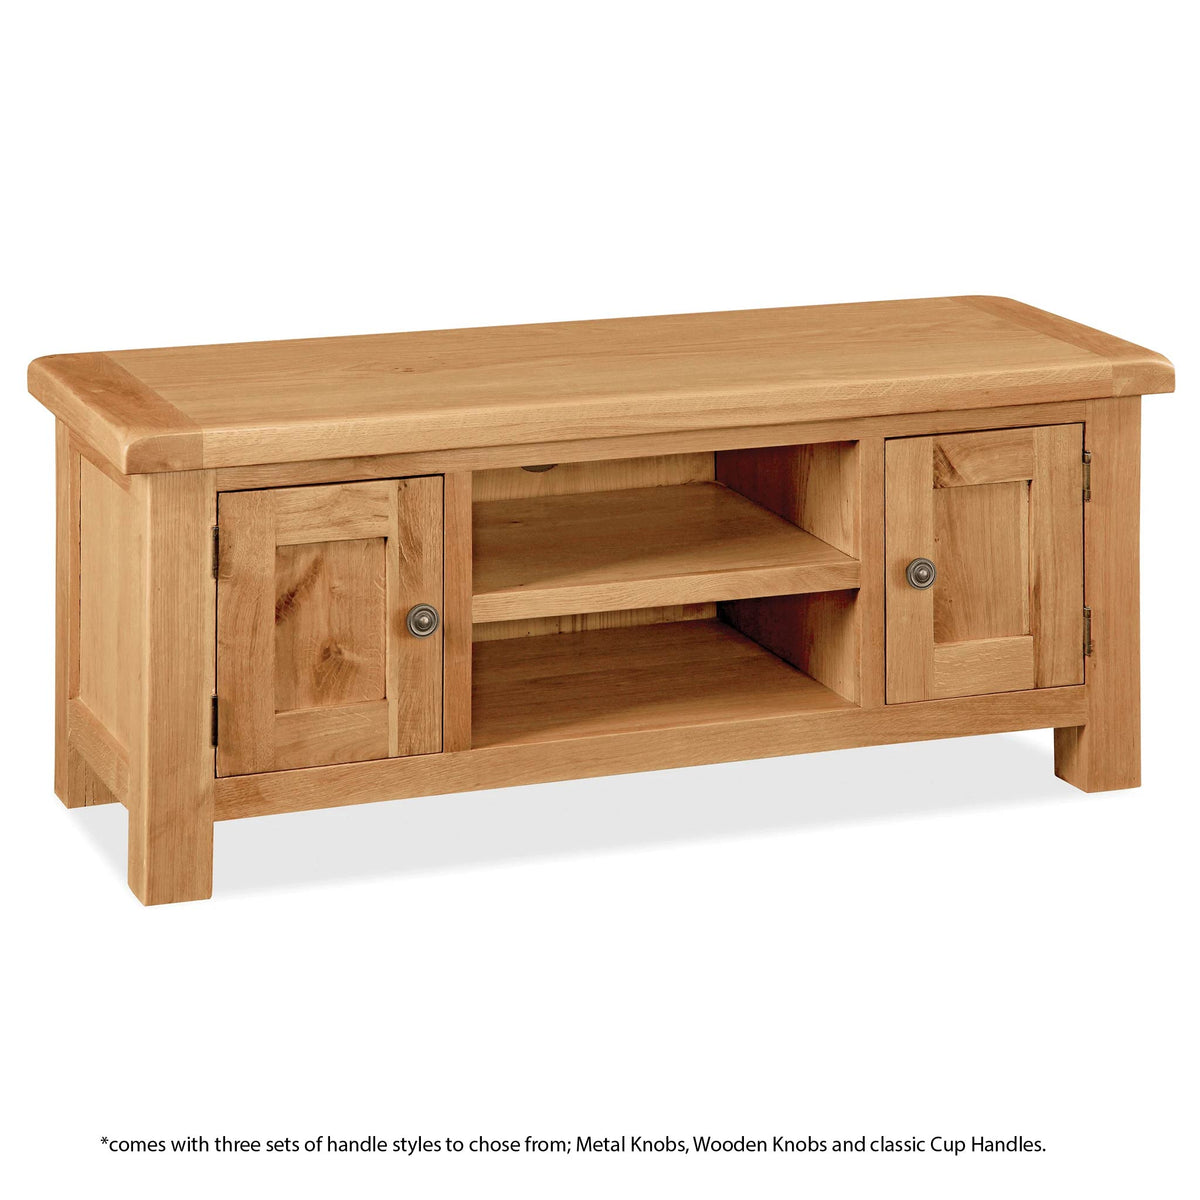 Sidmouth Oak 120cm TV Stand - Information on handles